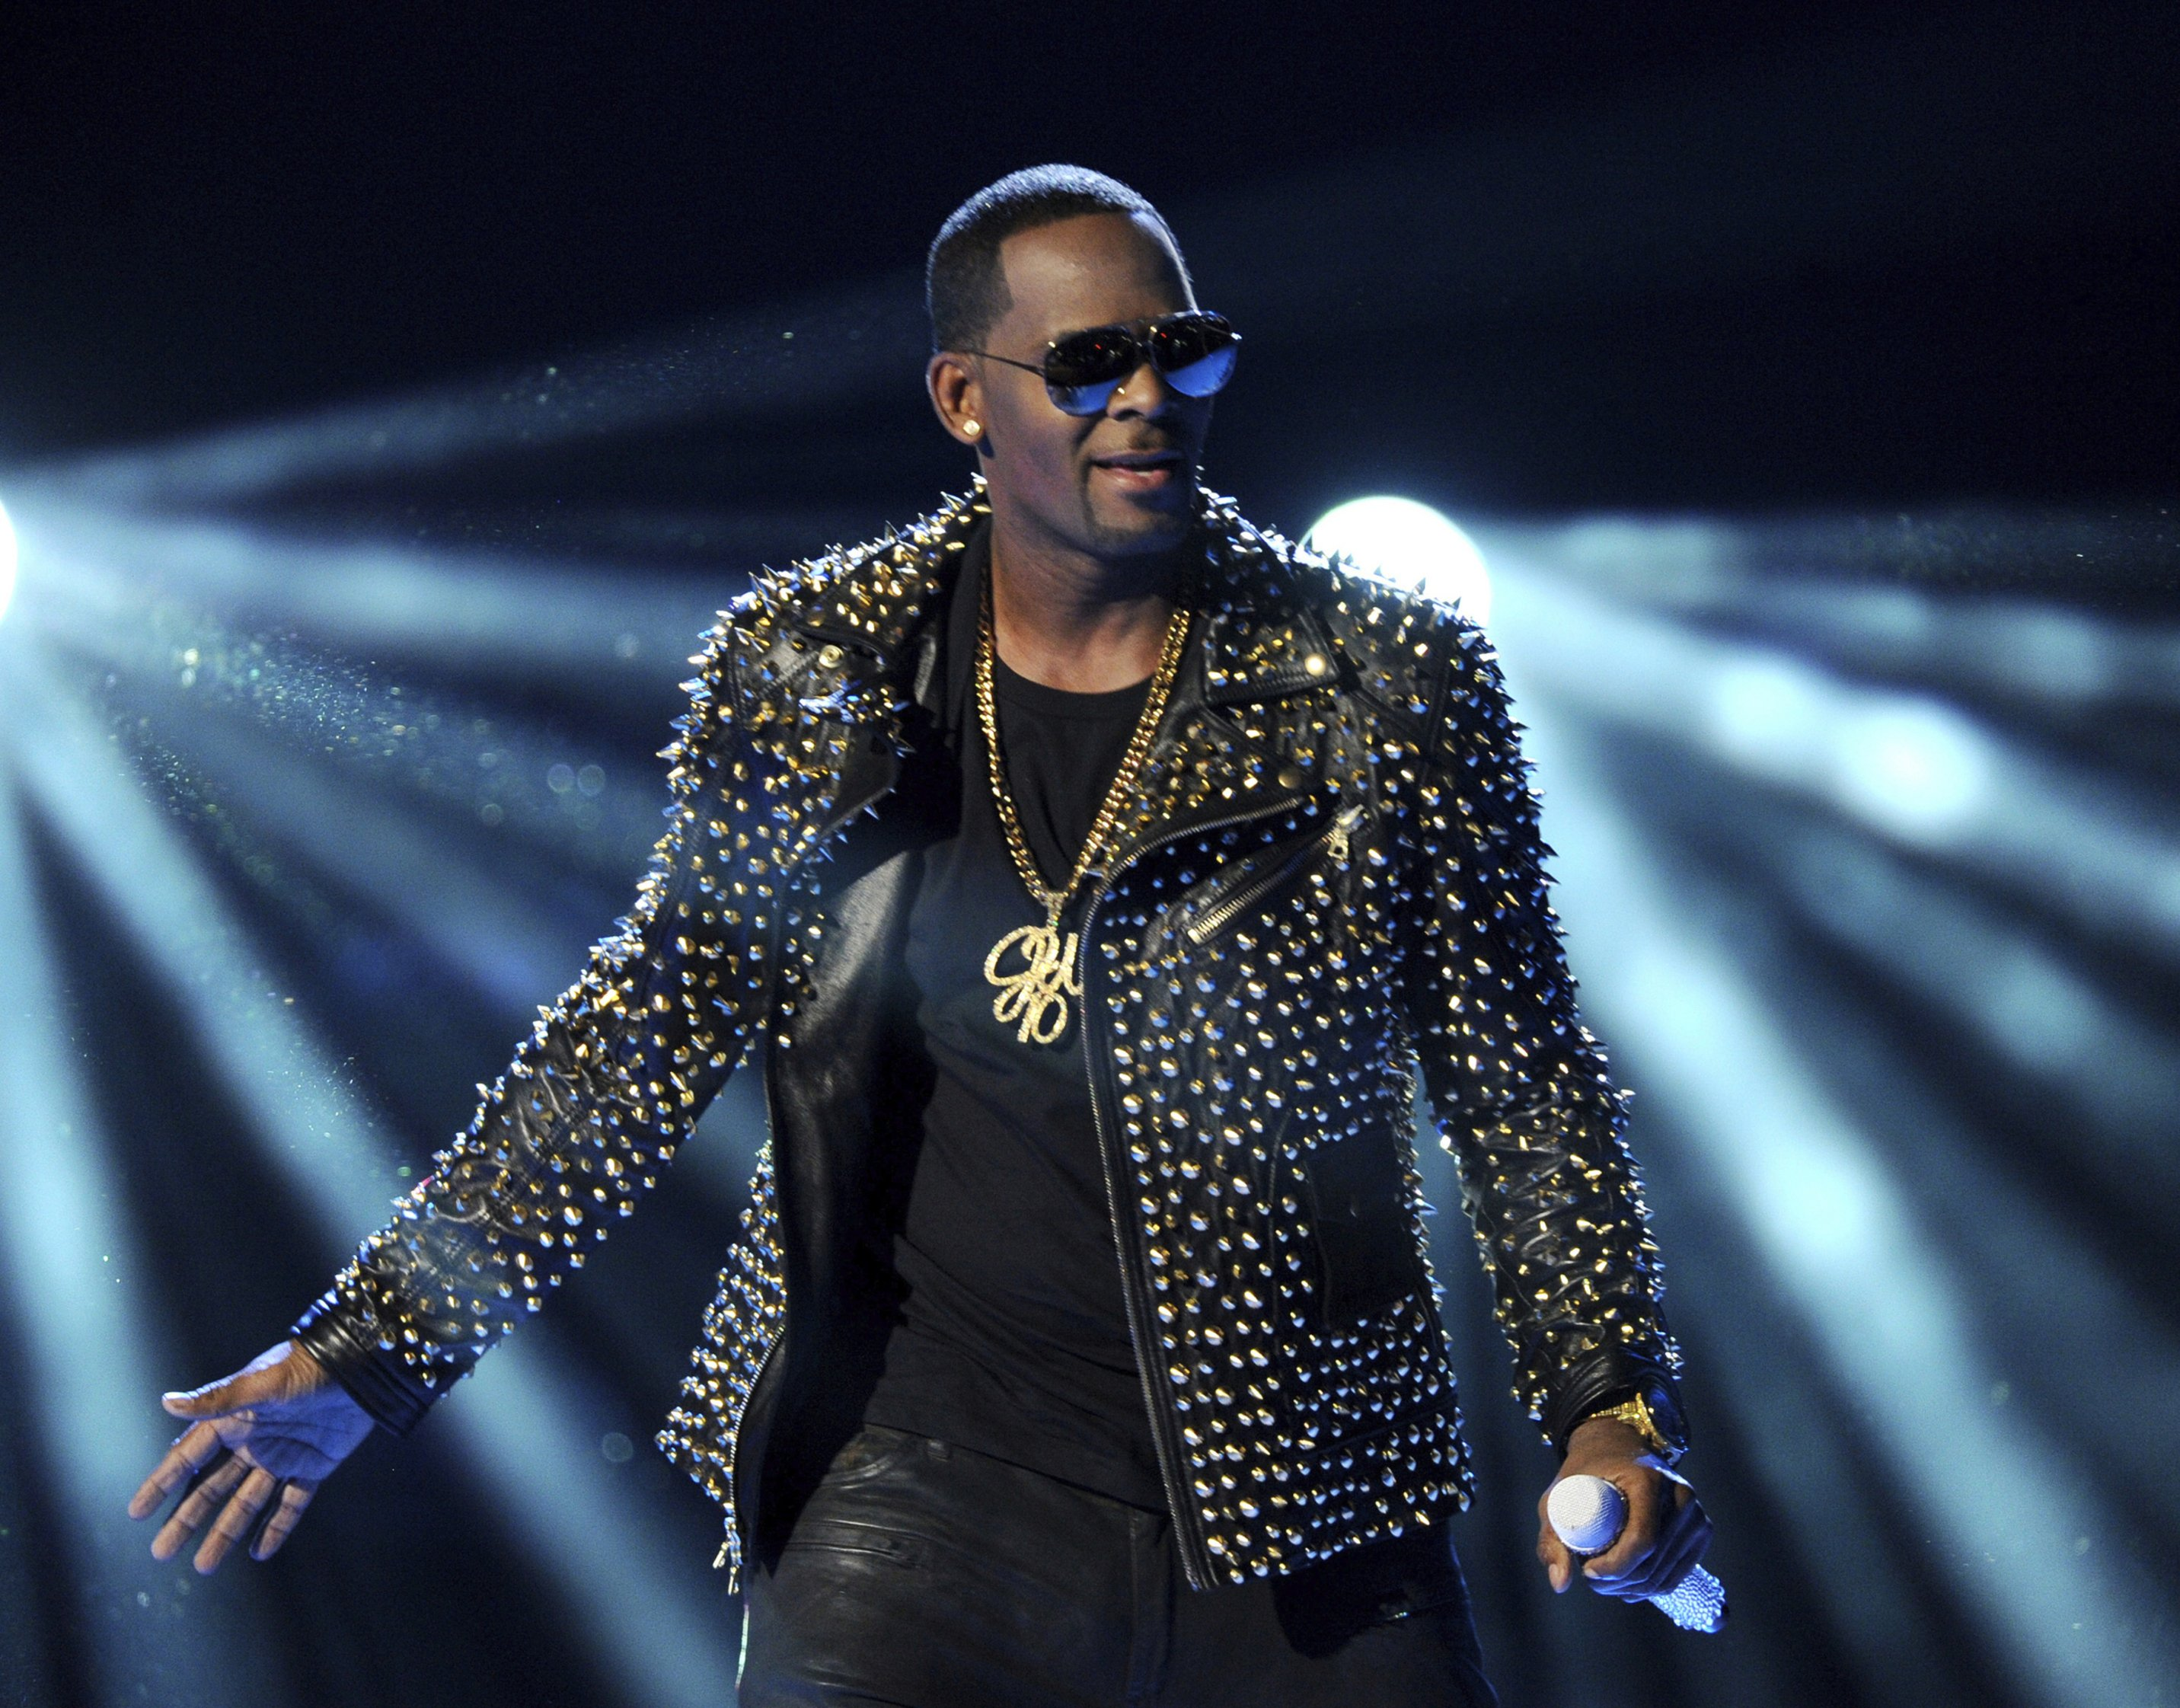 R. Kelly's European concerts in doubt after new charges